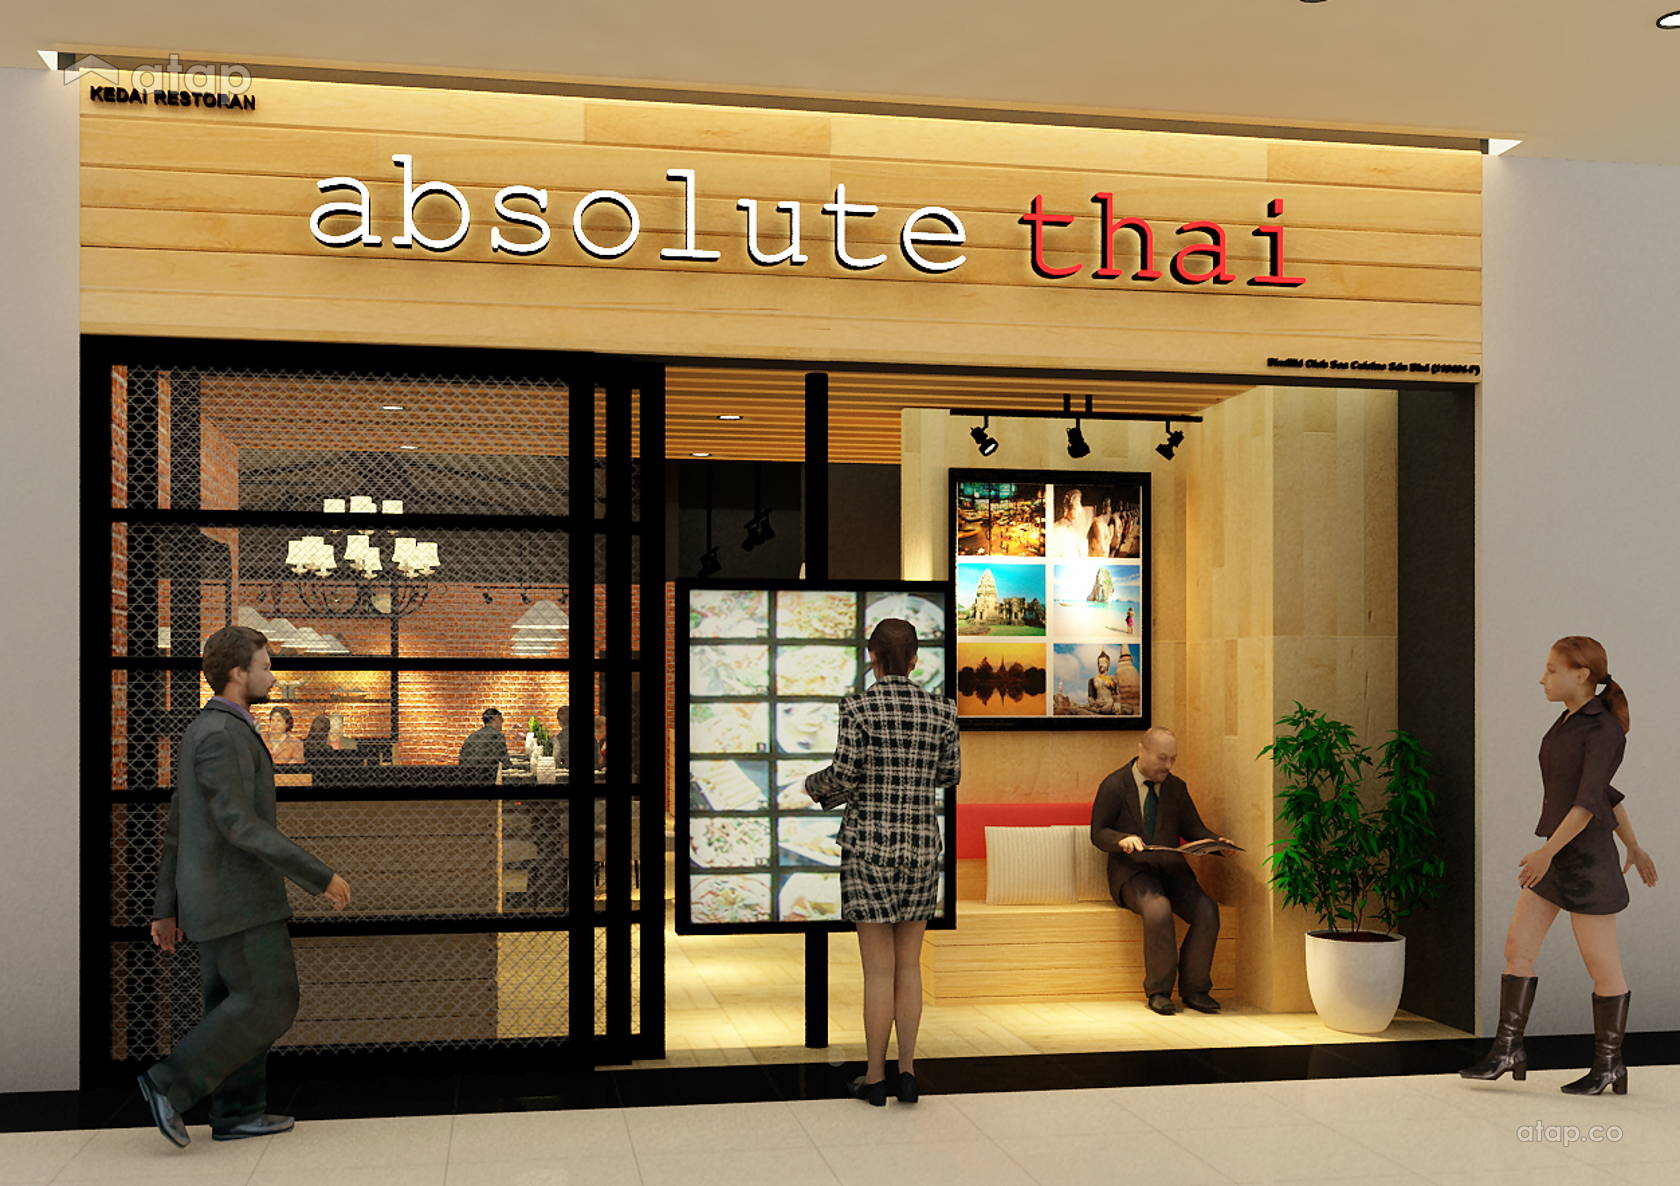 Thai Restaurant interior design renovation ideas, photos and price ...